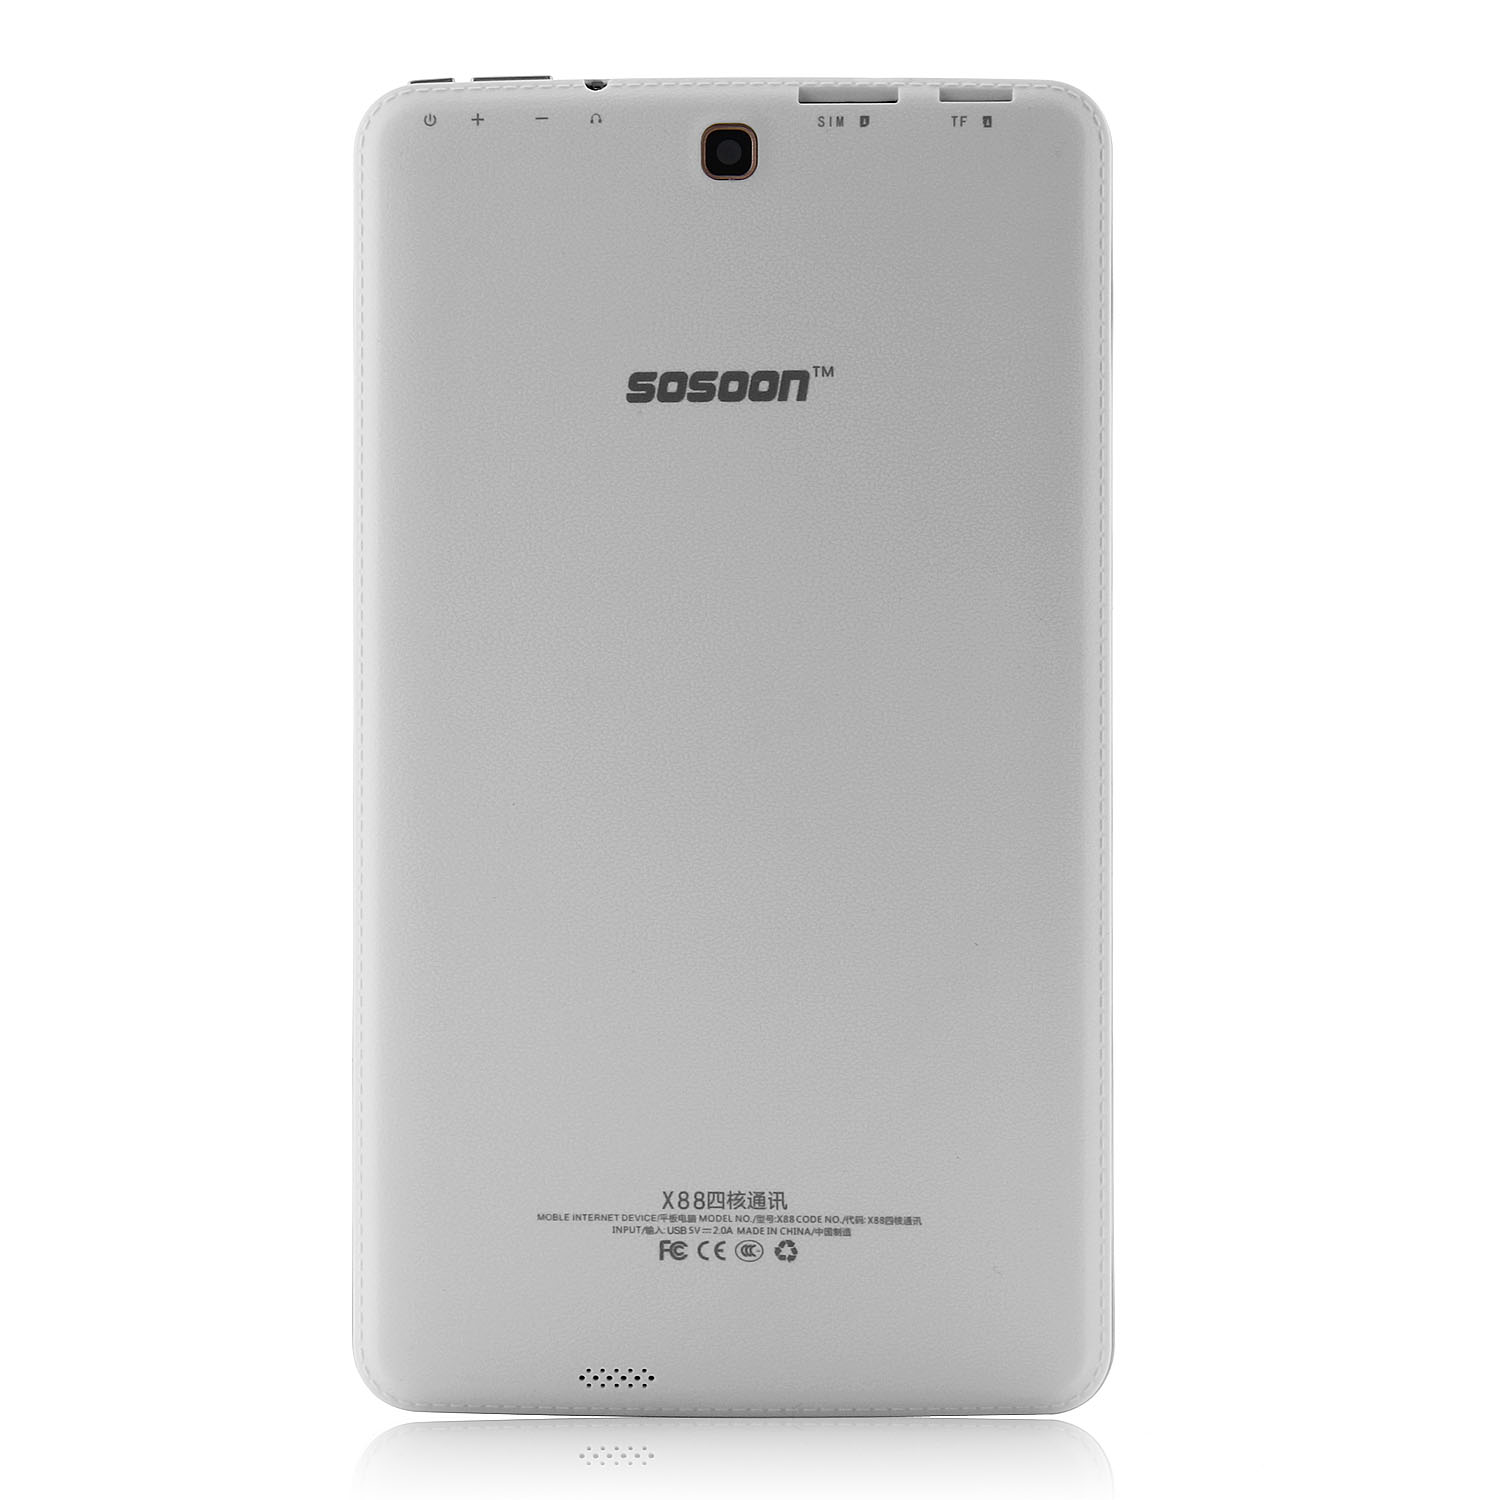 SOSOON X88 3G Tablet PC MTK8382 Quad Core 8.0 Inch Android 4.4 IPS Screen 8GB White